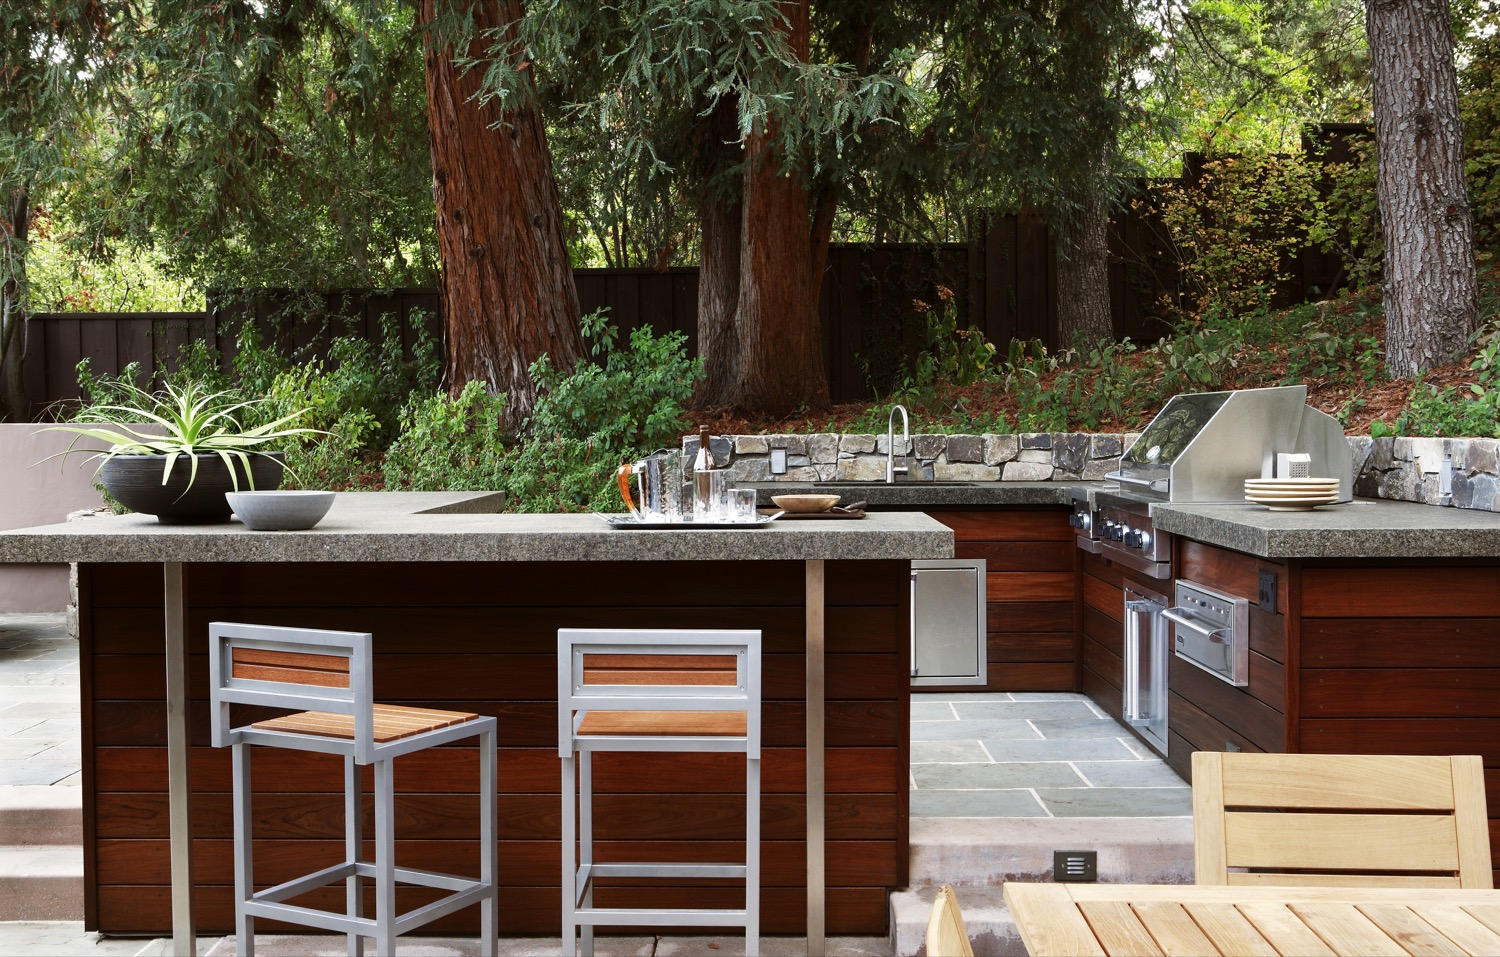 The large outdoor kitchen features the rich, dark tones of ipe wood, with a BBQ and a bar counter.